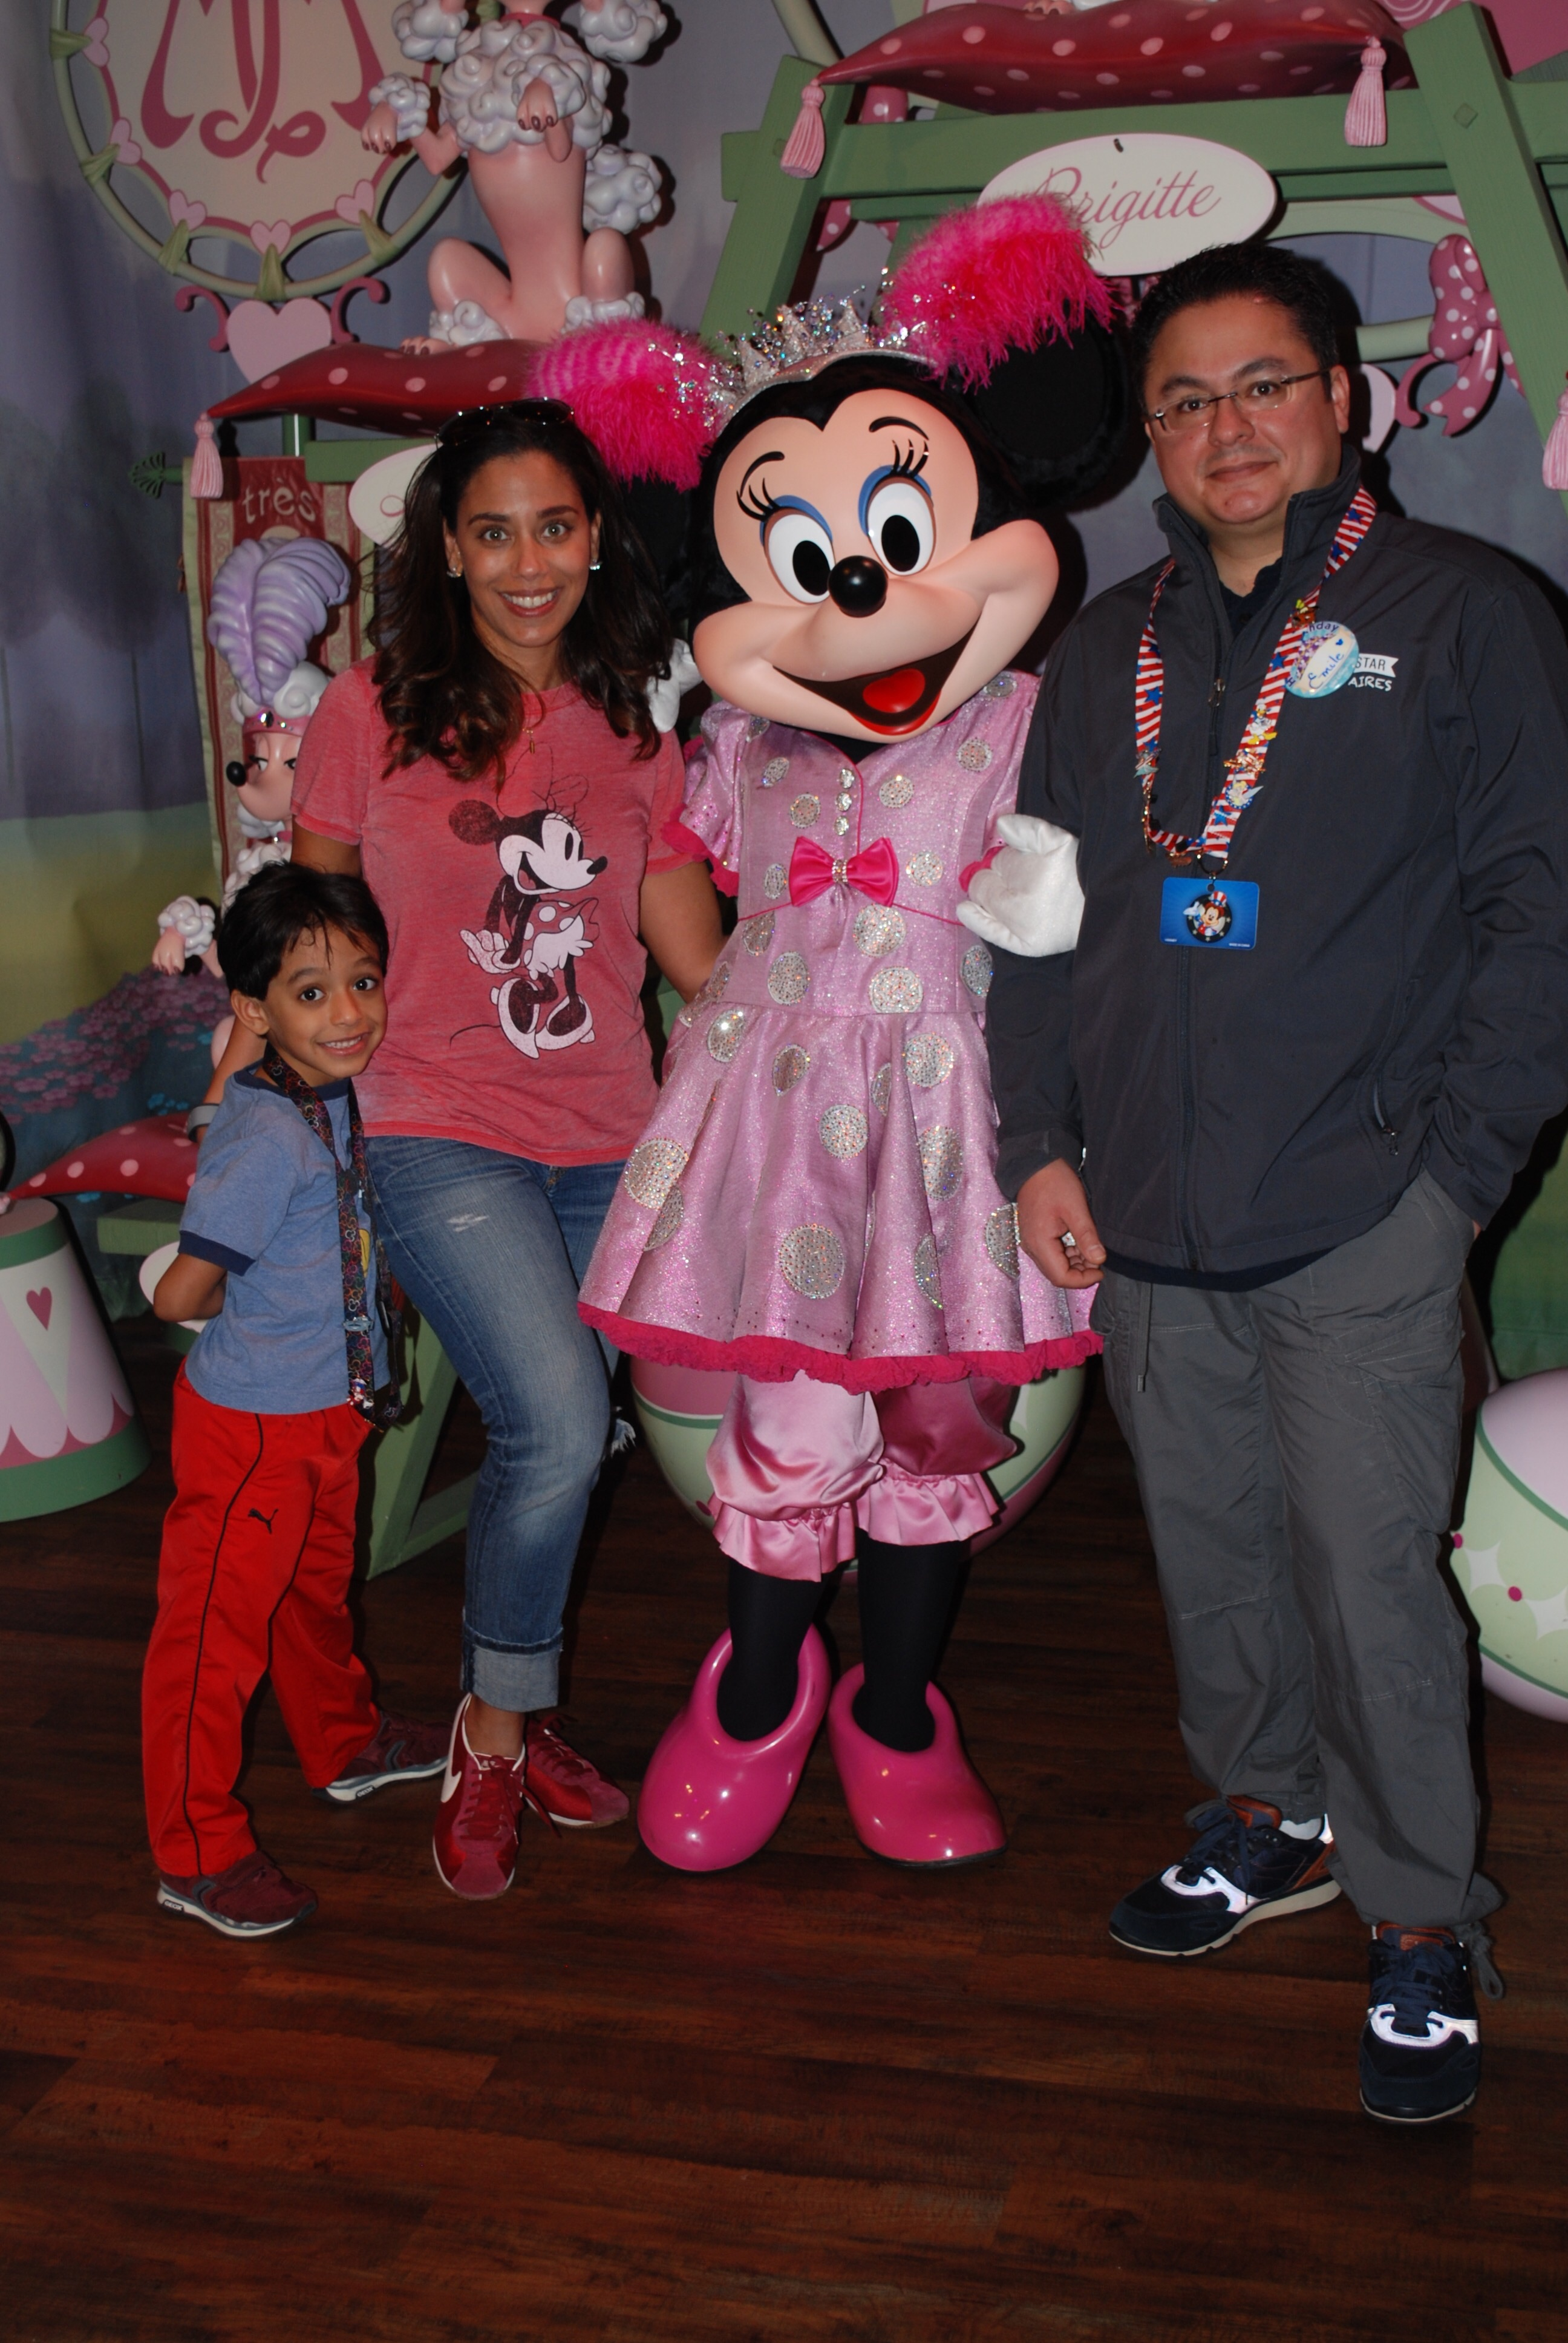 Family Fun at Disney World with Minnie